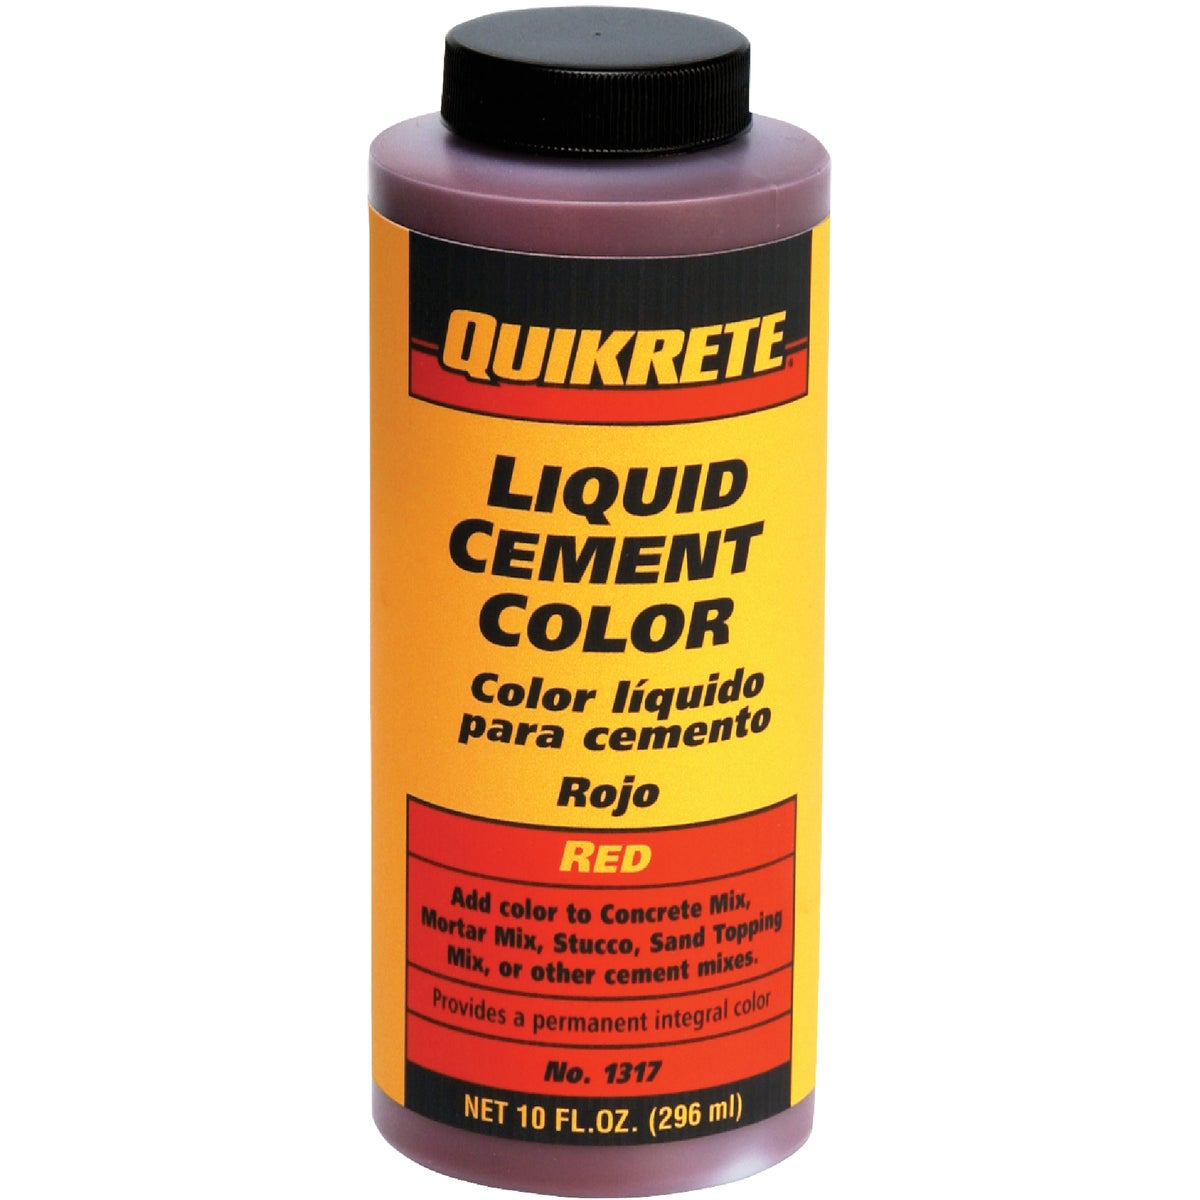 RED LIQUID CEMENT COLOR